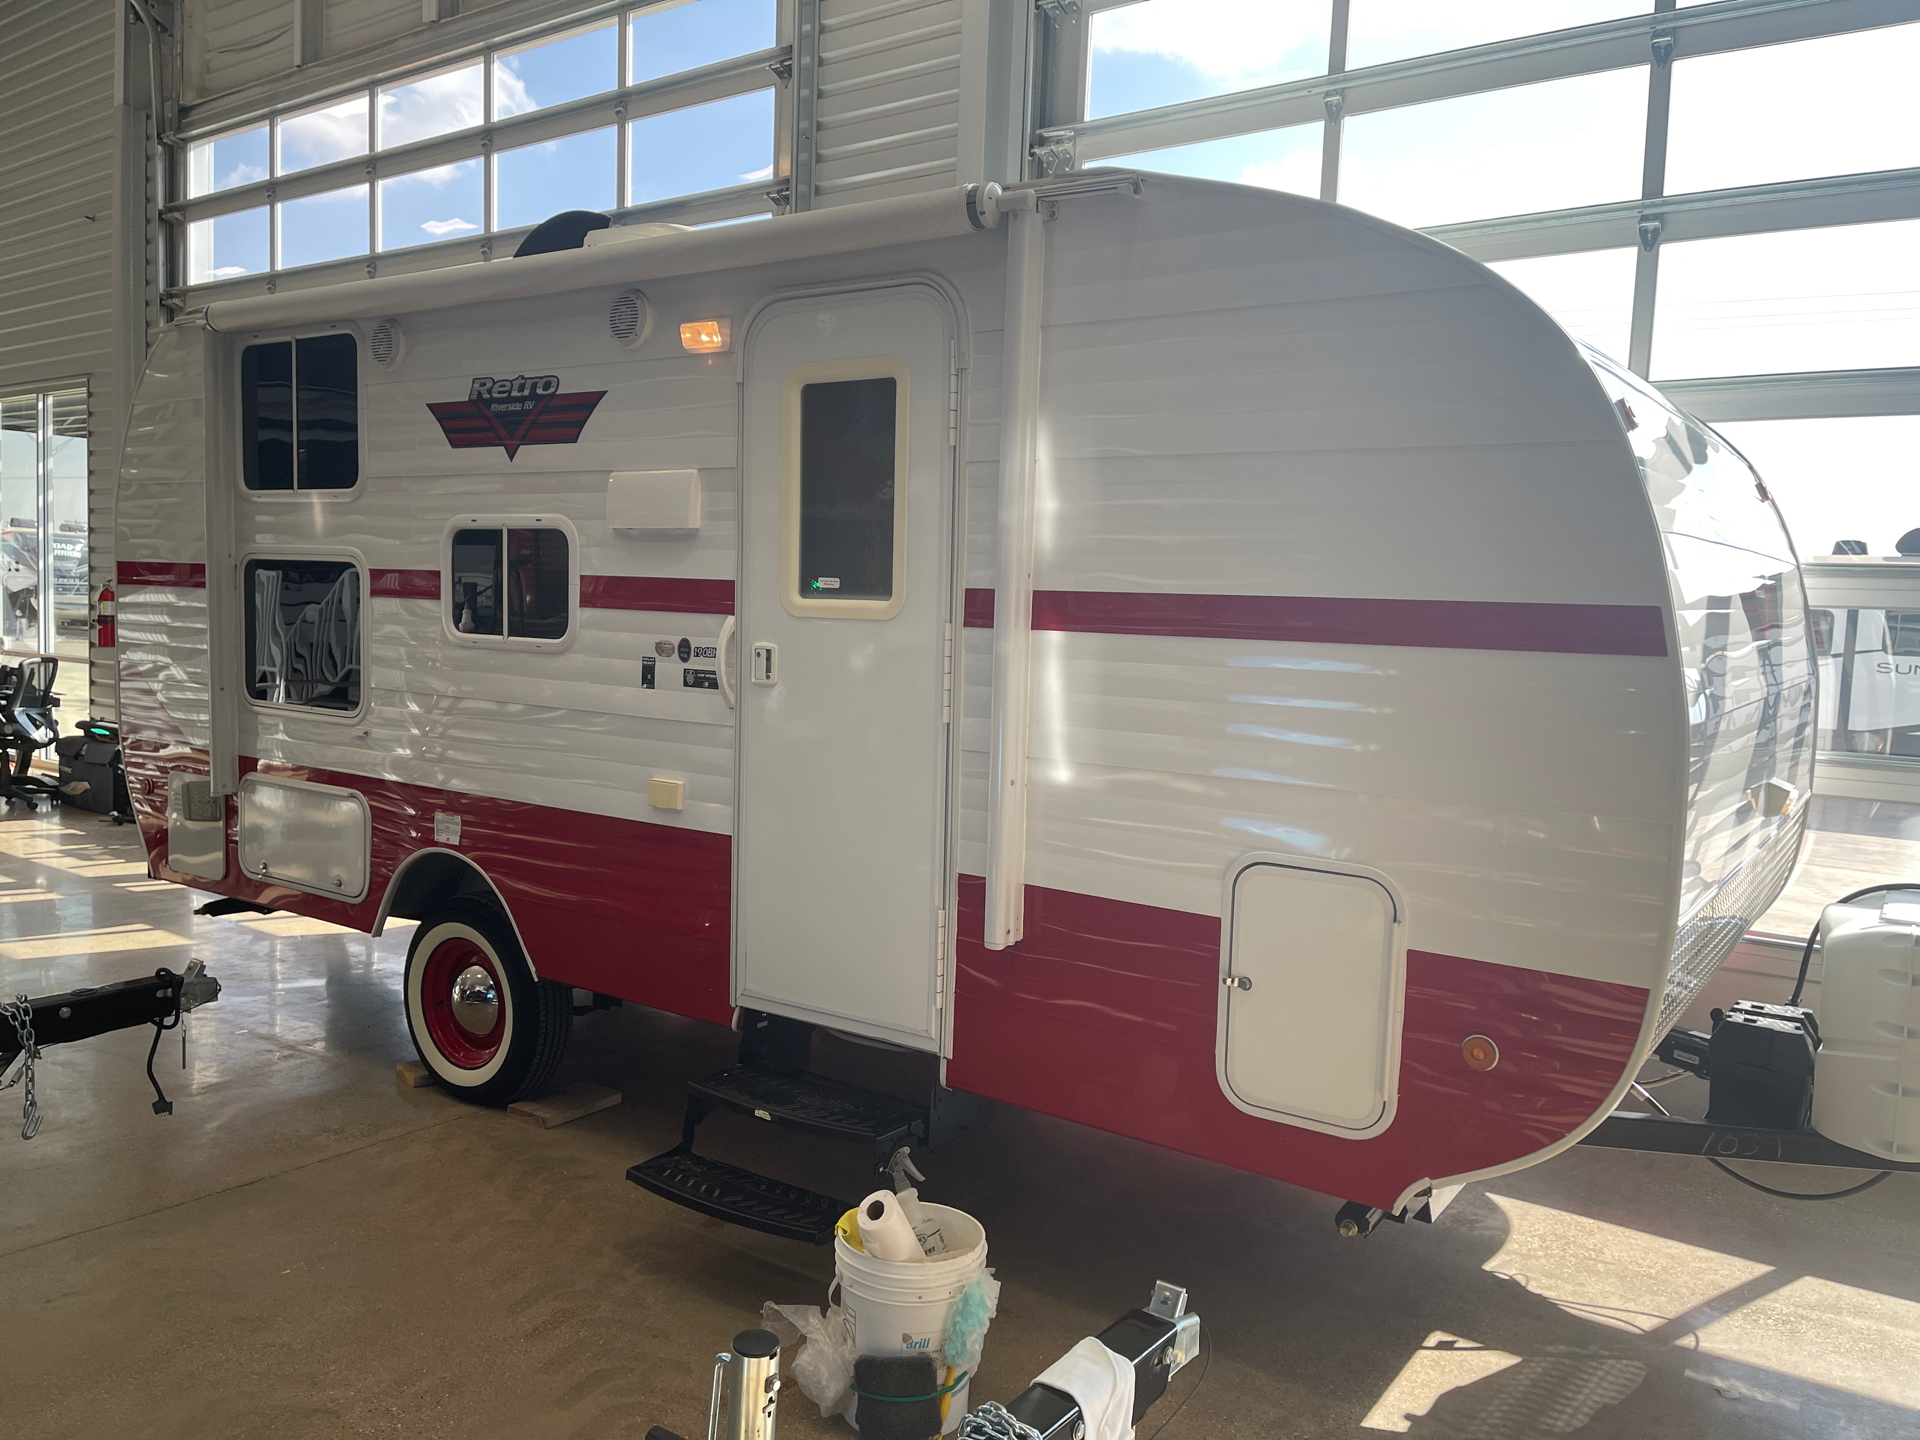 2019 Riverside RV  Retro 190BH in Wolfforth, Texas - Photo 1